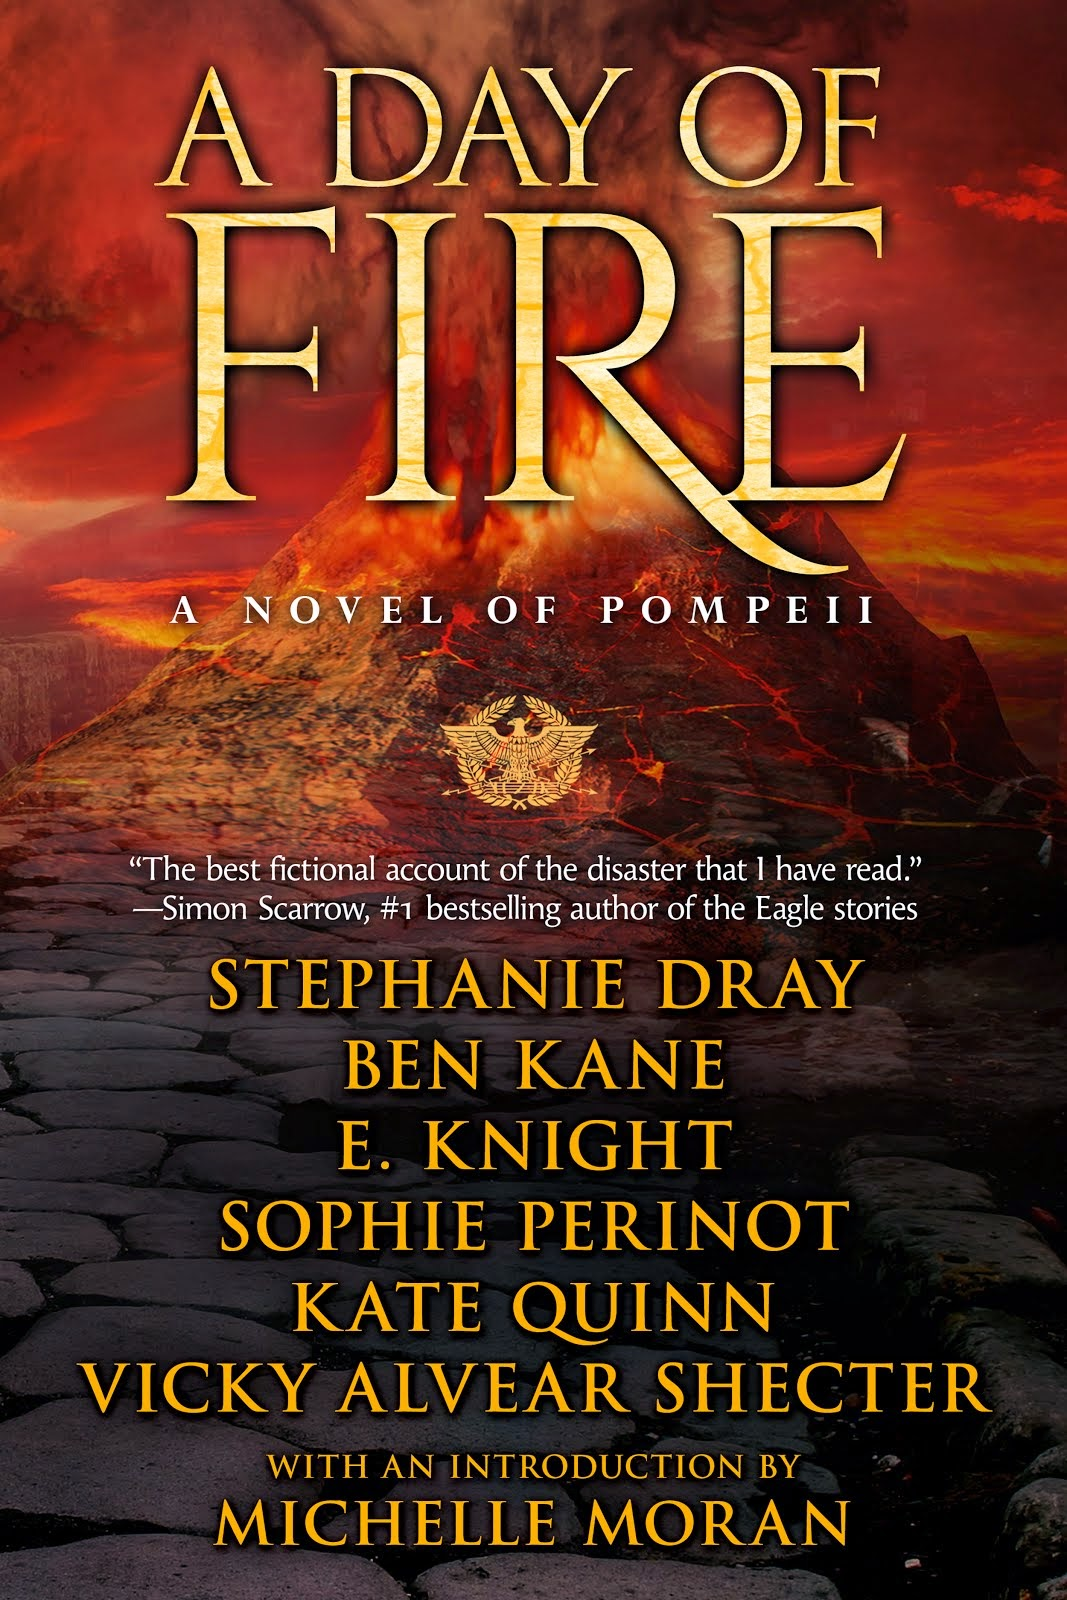 NEW RELEASES! A DAY OF FIRE